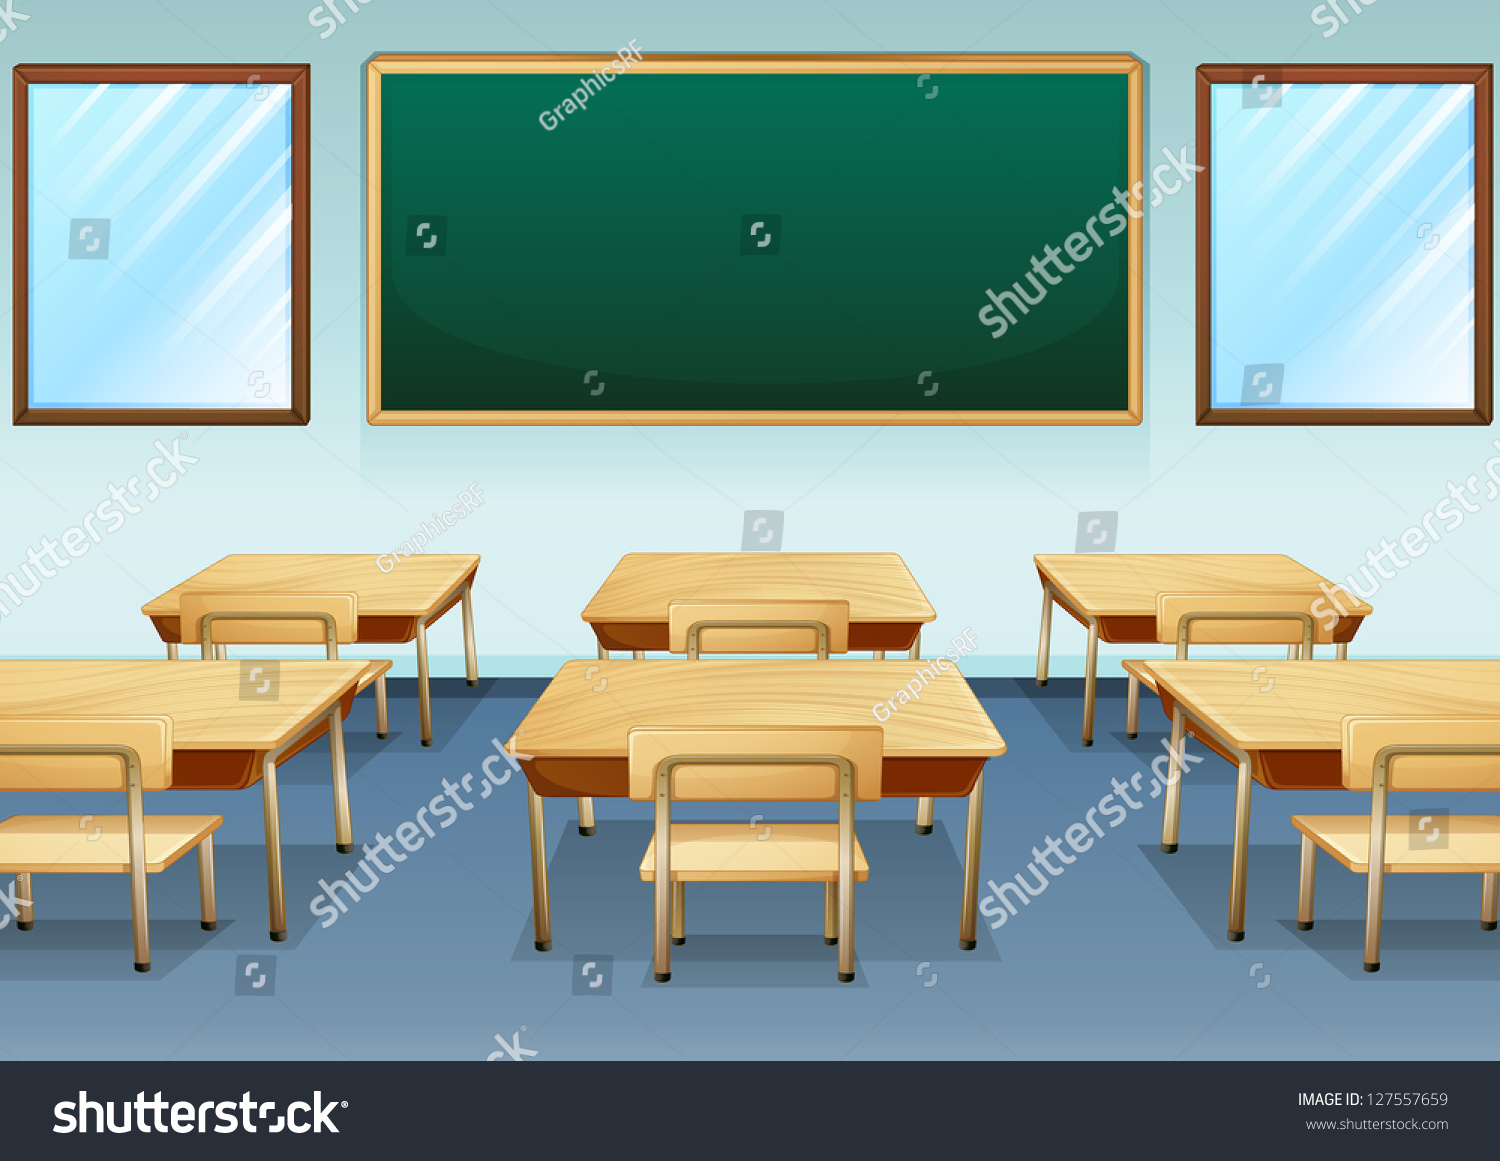 Modern Classroom Vector : Illustration of a clean and empty classroom